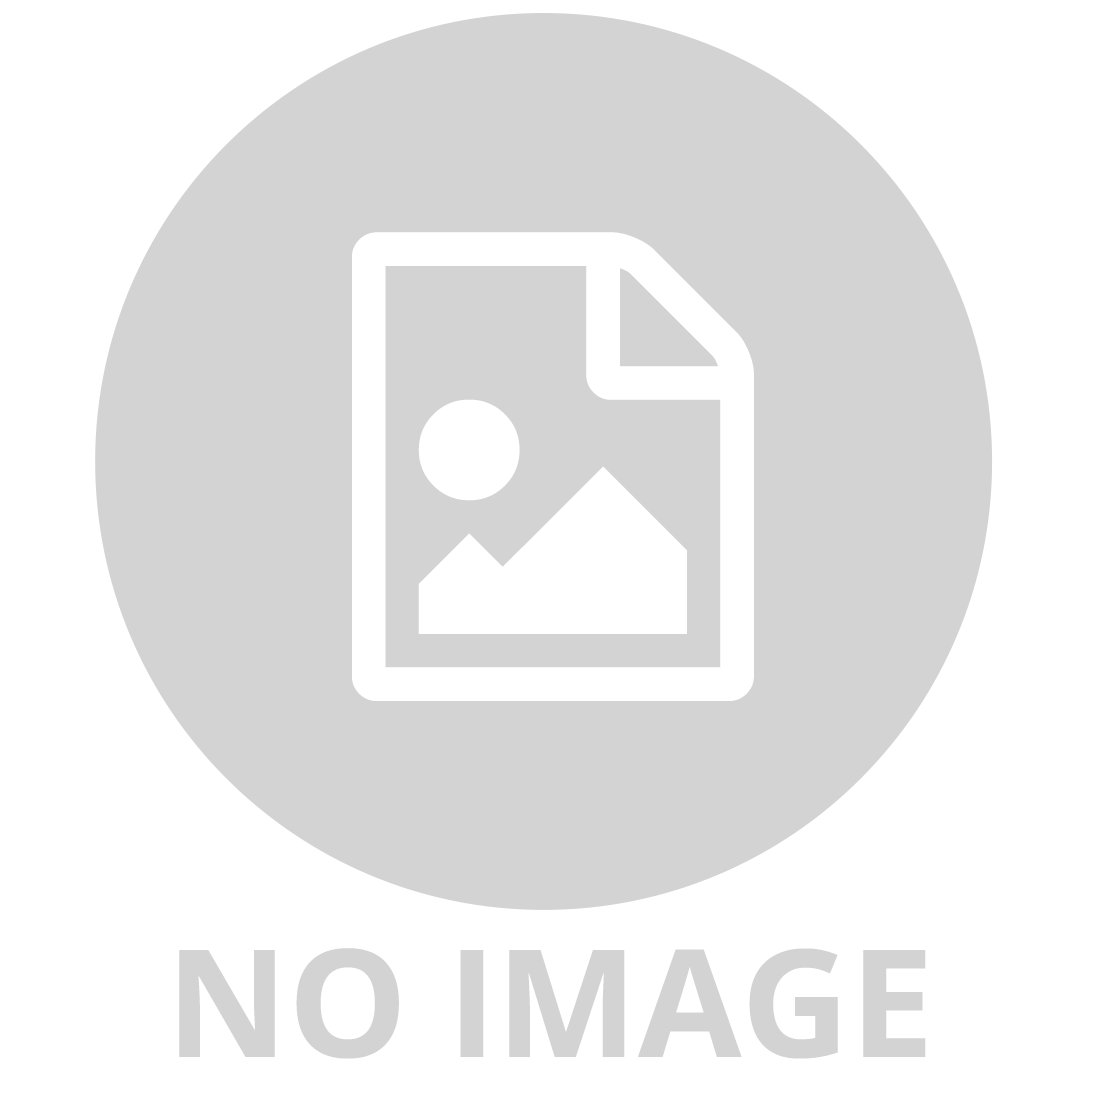 MICRO MACHINES MULTIPACK STARTER 3 PACK - MUSCLE CARS #04